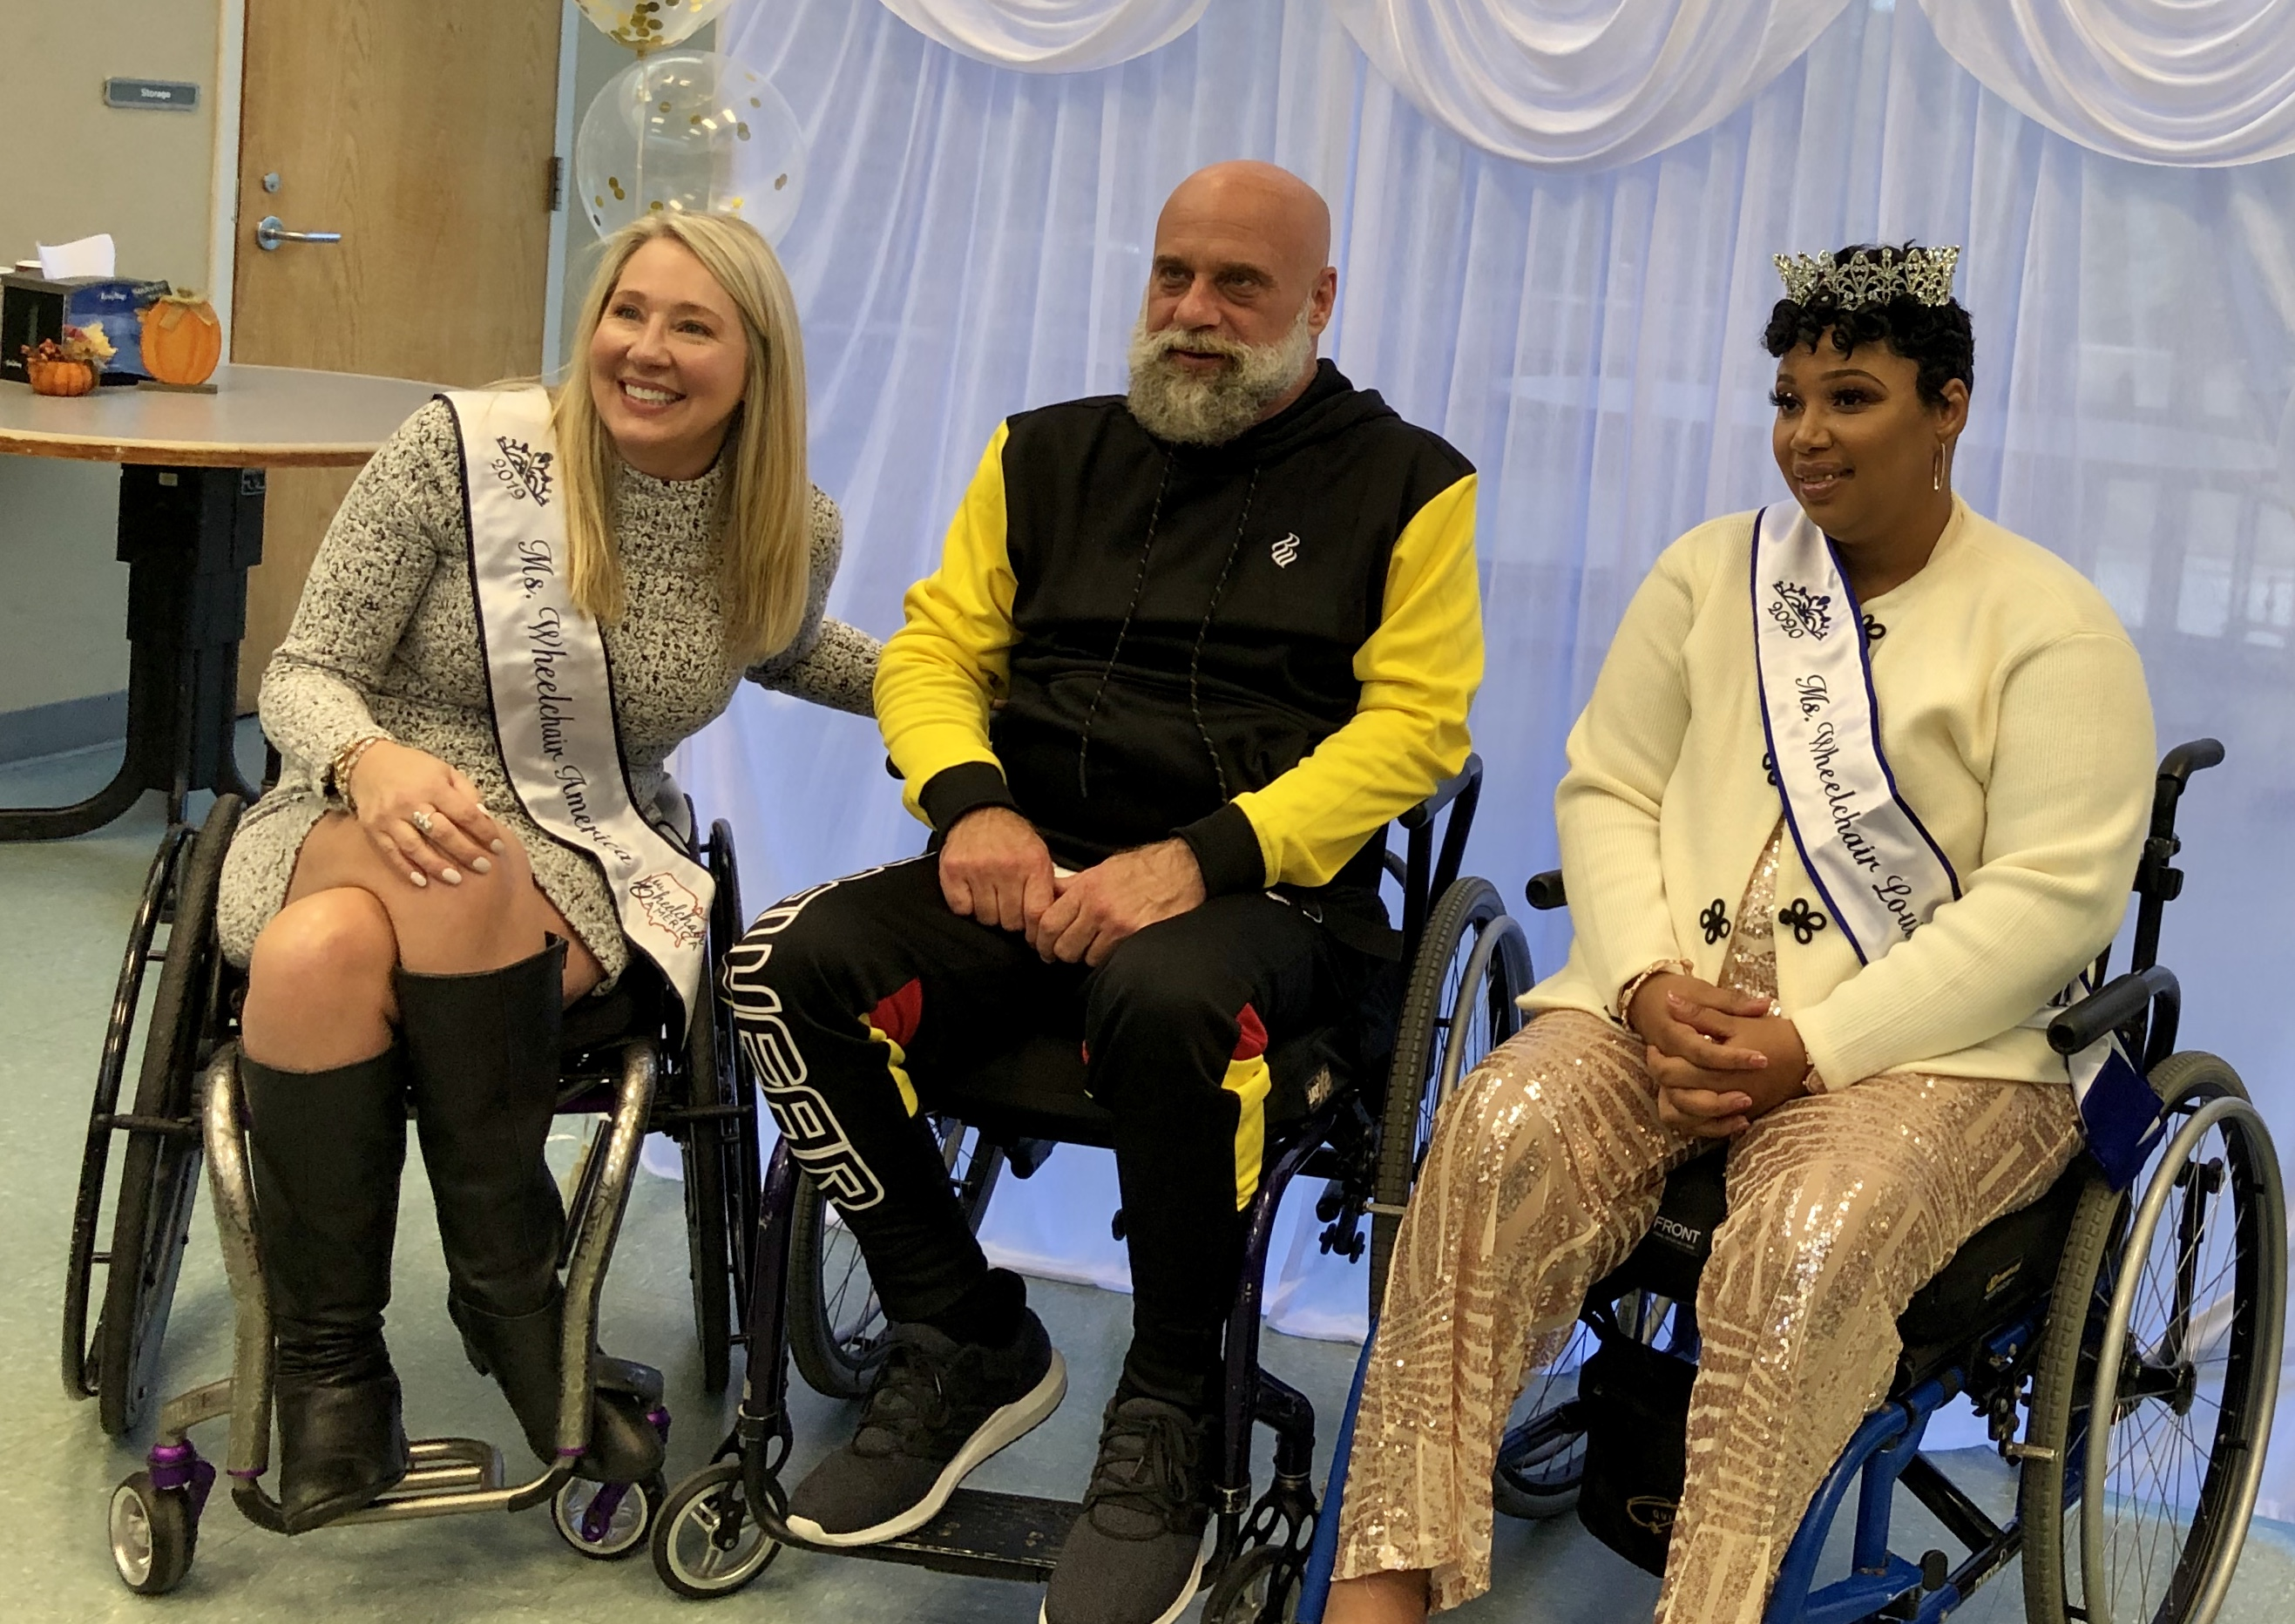 Photo of Ms. Wheelchair: People listen 'when you wear a crown and sash'